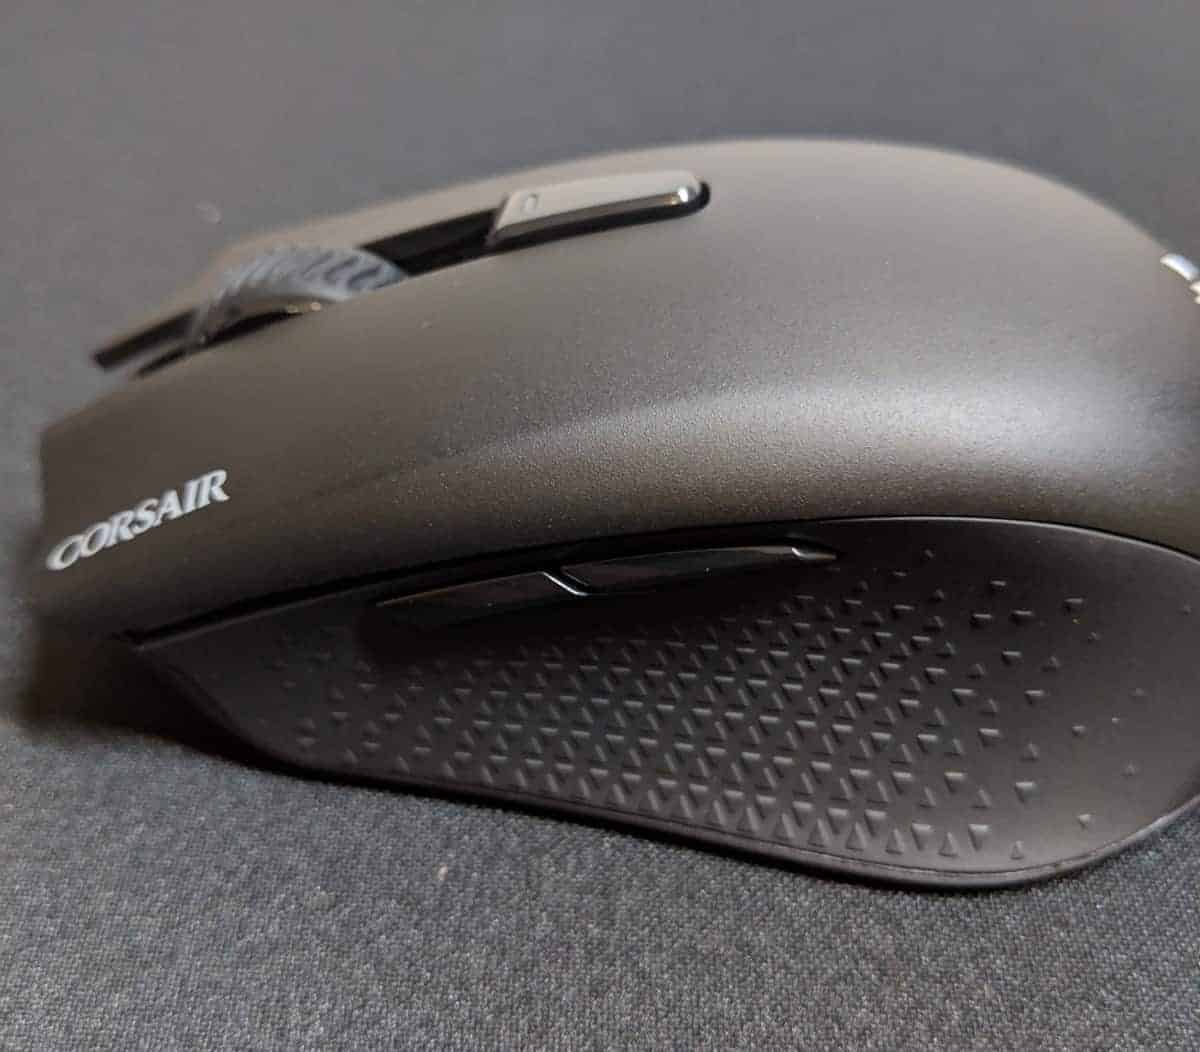 Corsair-Harpoon-Photos-01 Corsair Harpoon RGB Wireless Review